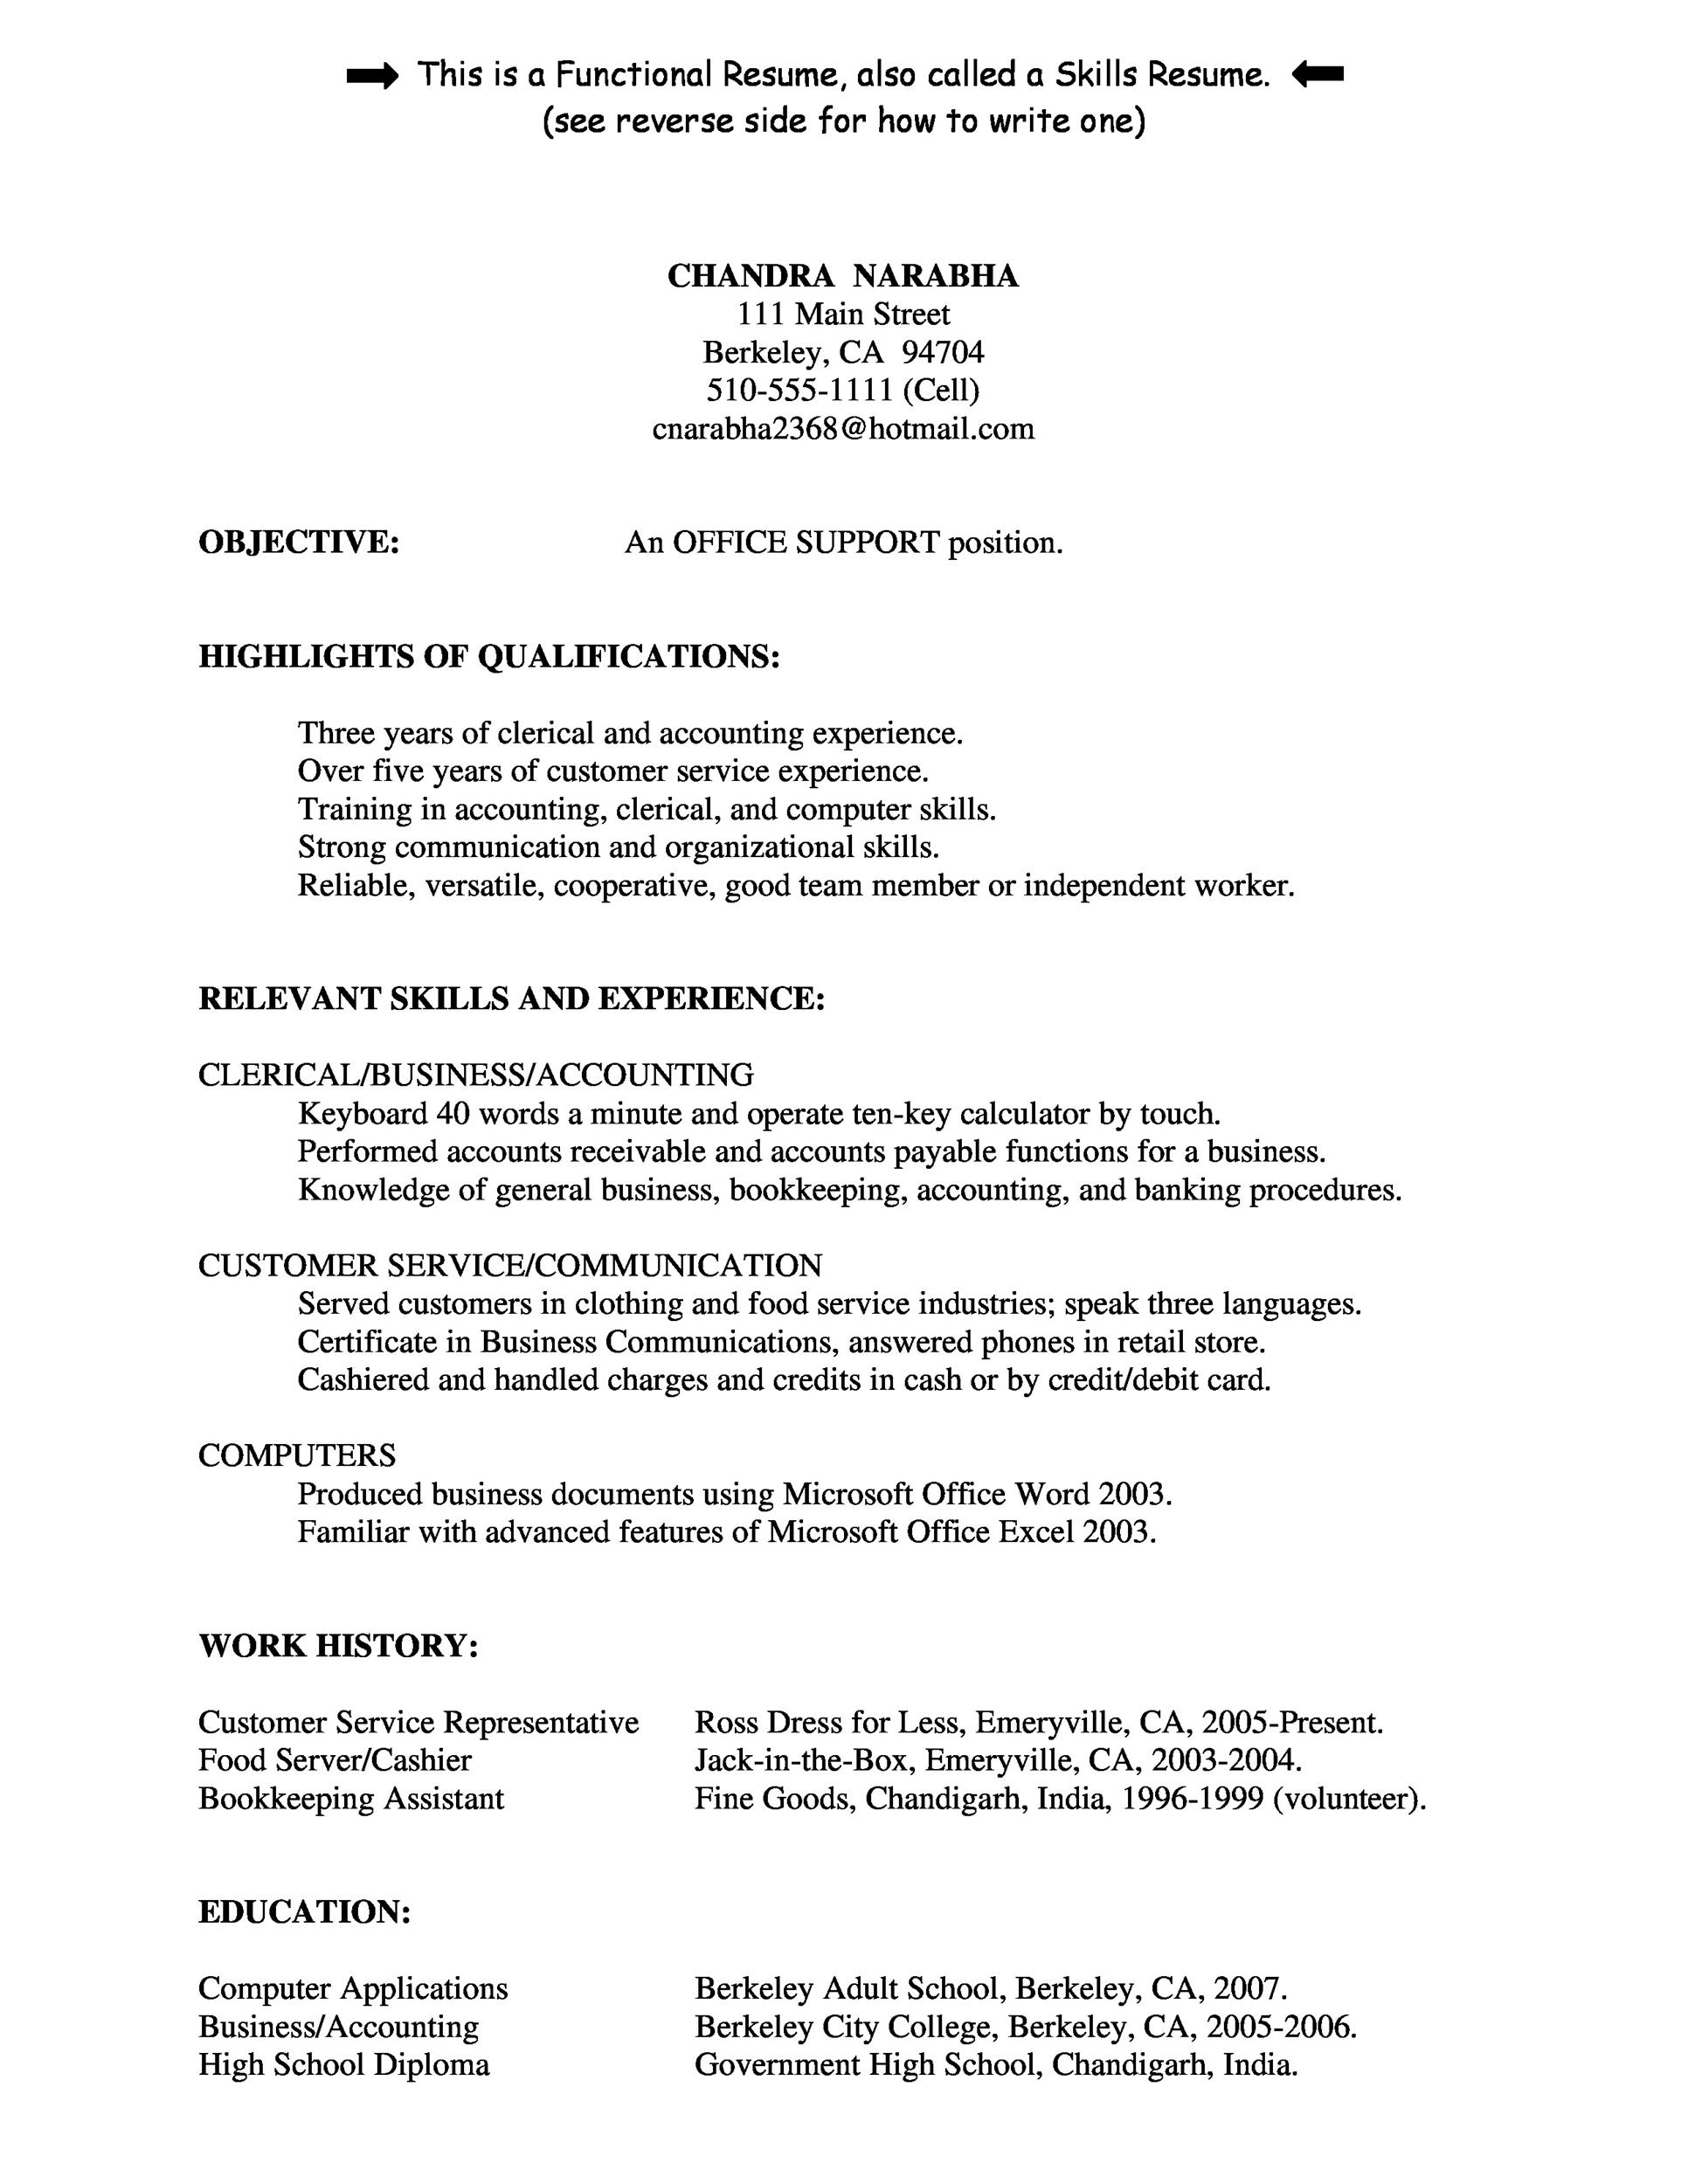 30+ Customer Service Resume Examples - Template Lab - how to word a resume